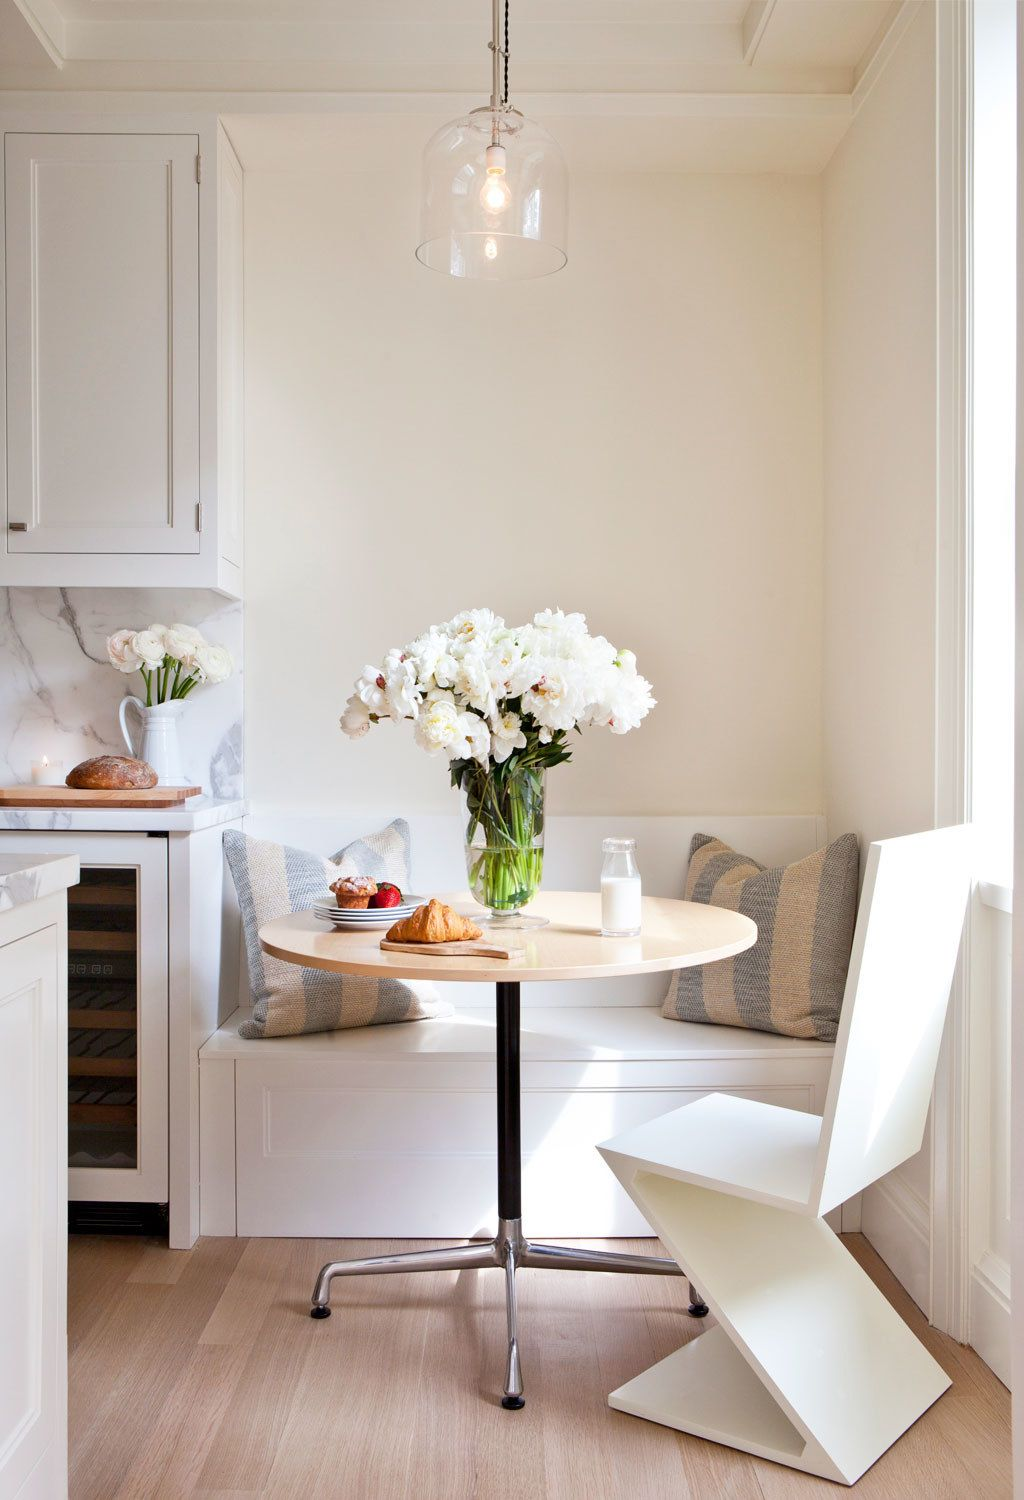 Refresh Your Space for the New Year—Without a Complete Redesign